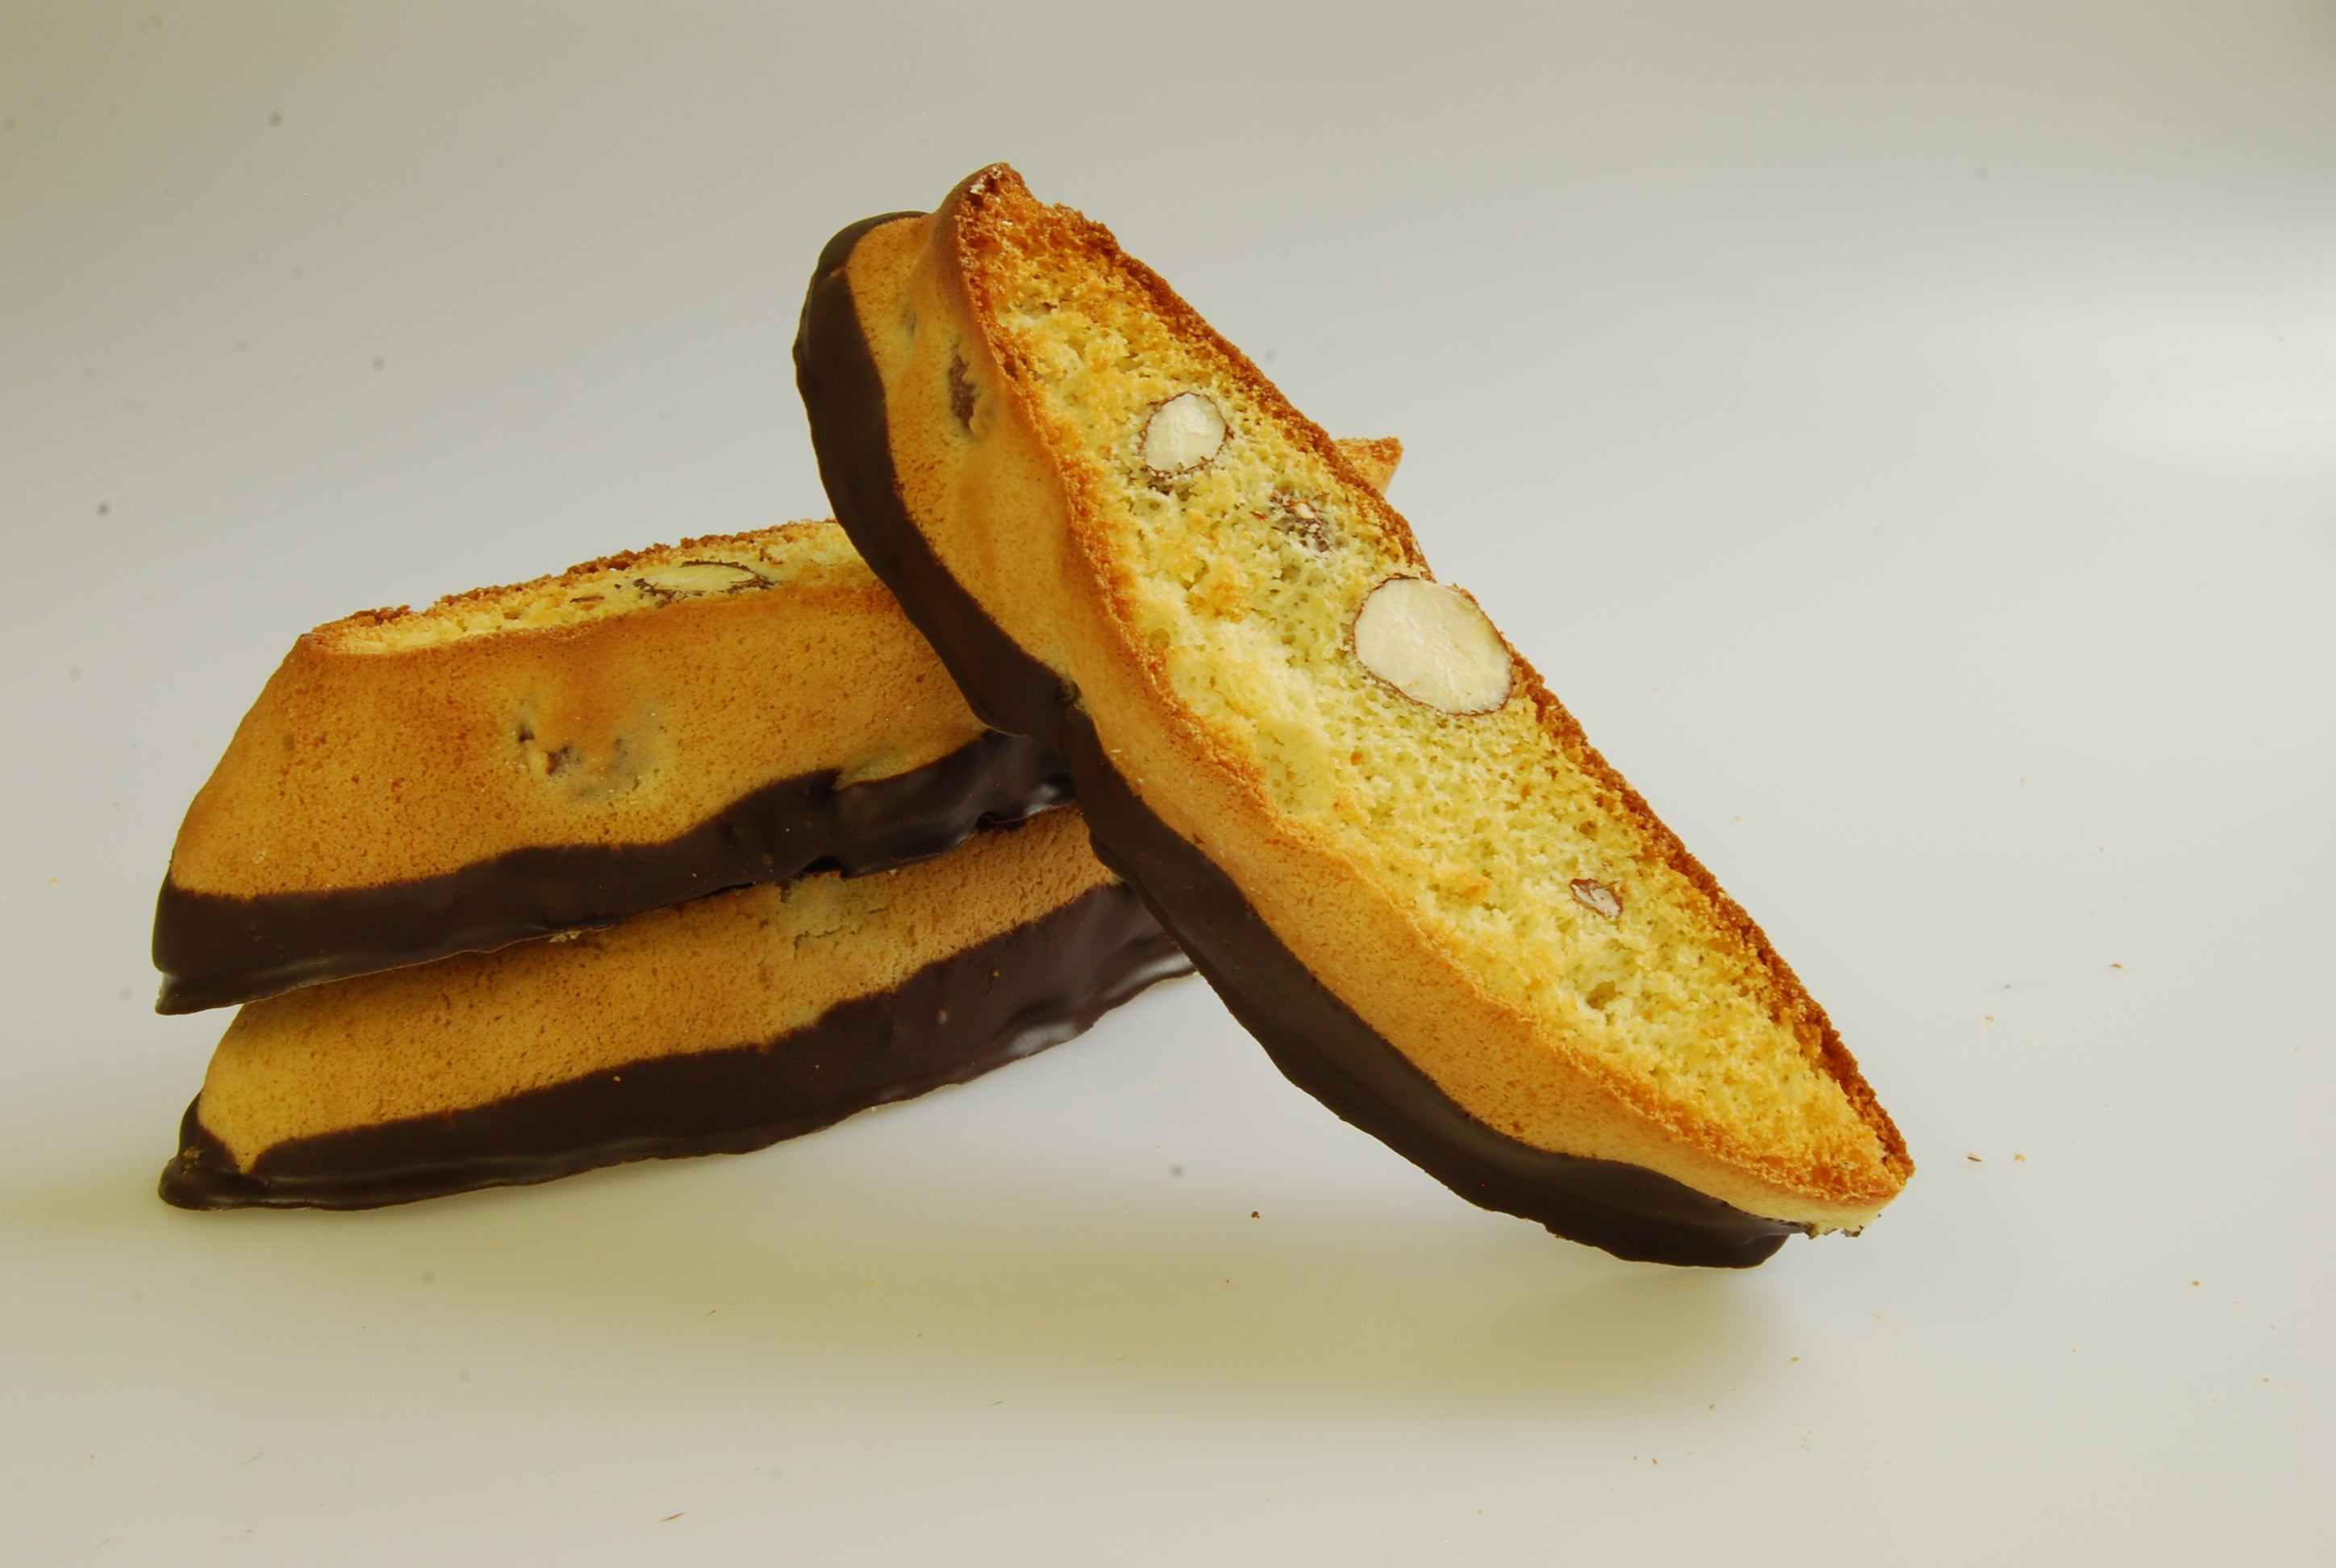 Biscotti, Almond Dipped